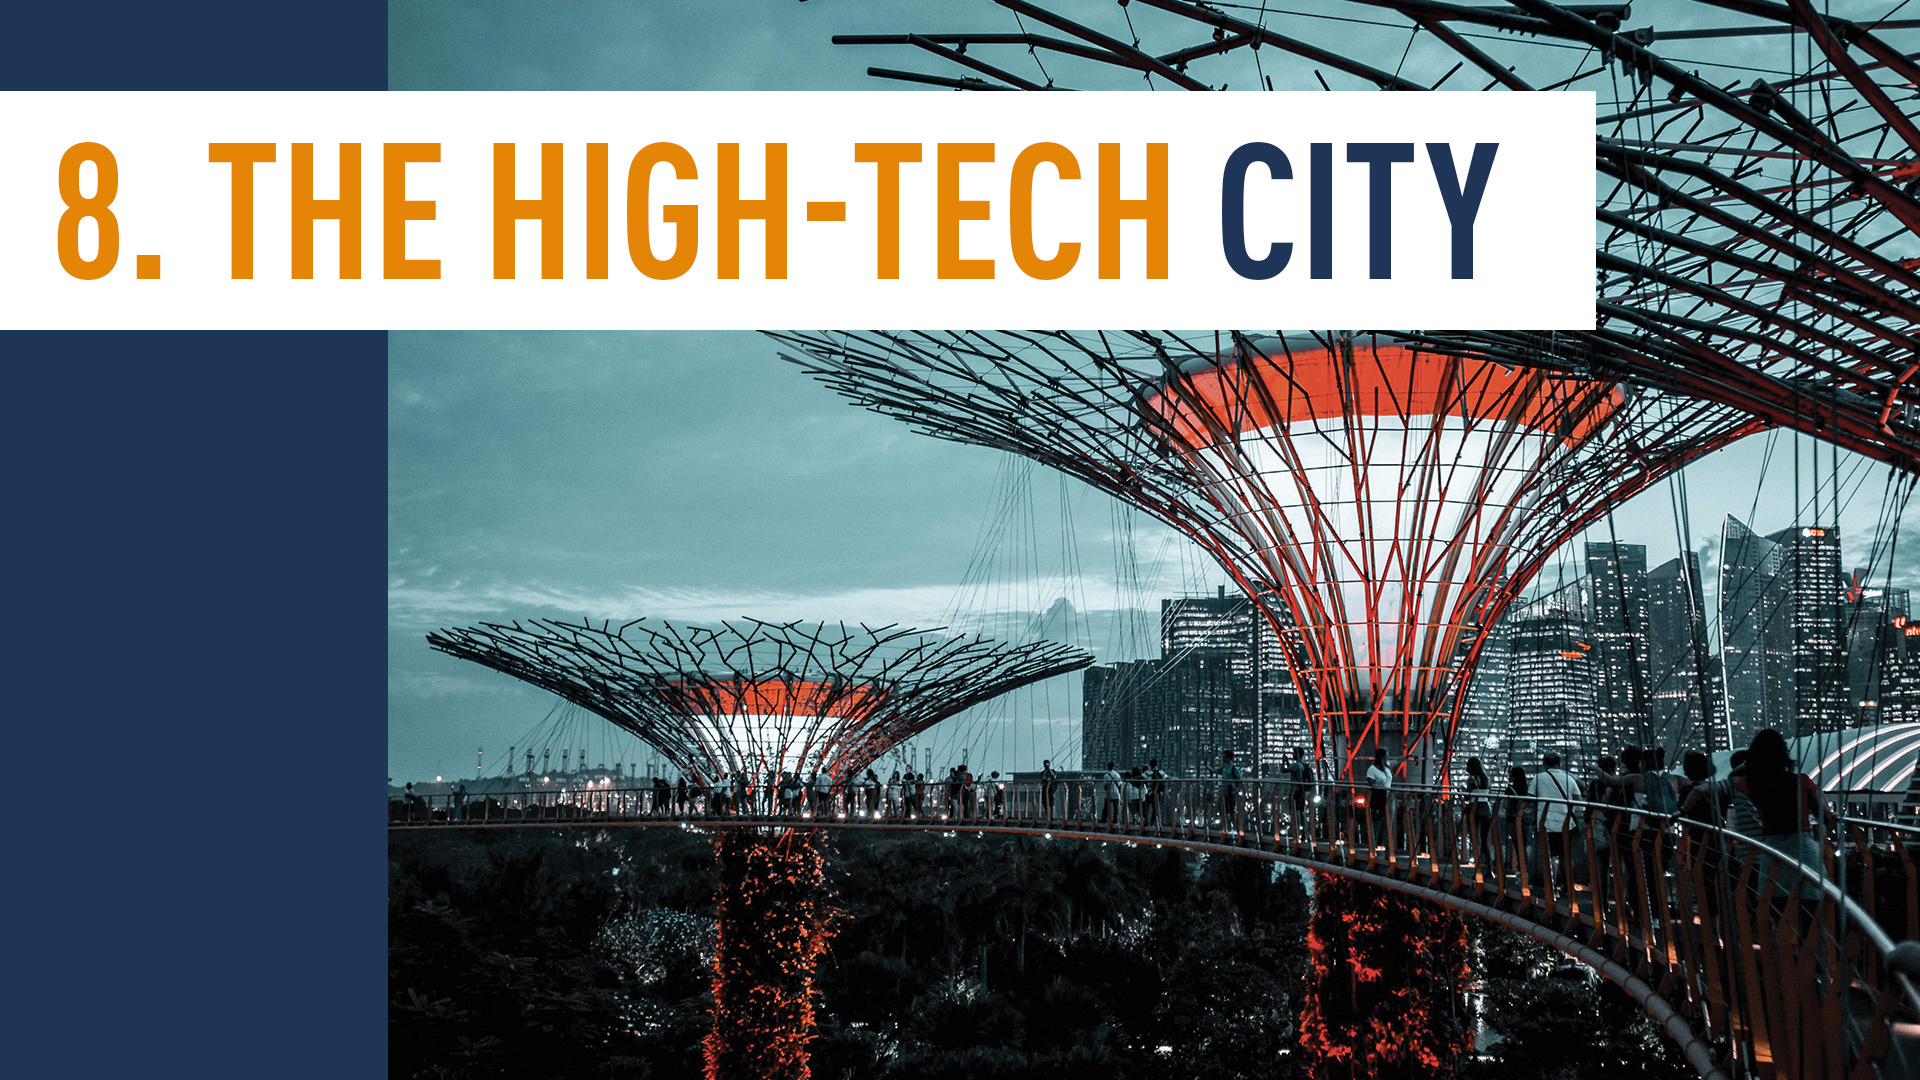 THE HIGH-TECH CITY